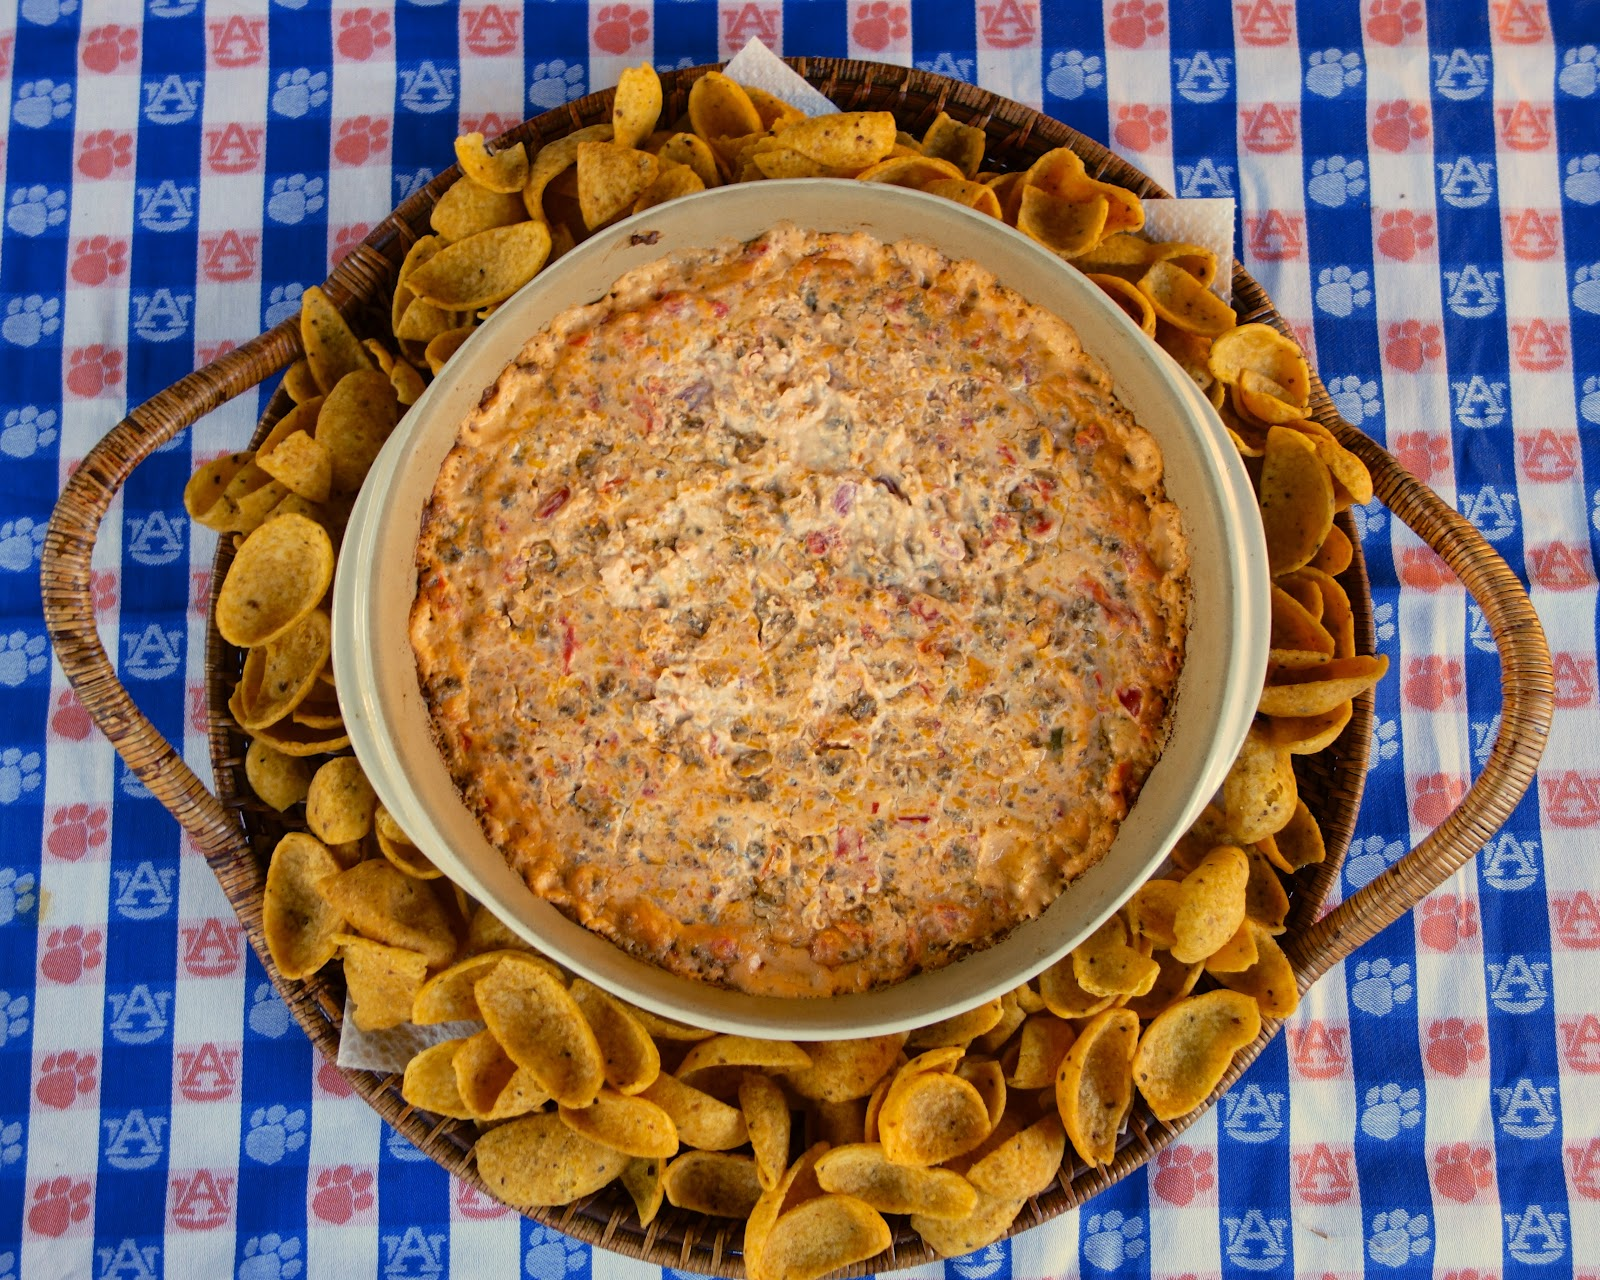 Hot Sausage Dip - always the star of our parties! Can make ahead and bake when ready. Seriously delicious!! Hot sausage, cream cheese, sour cream, cheddar cheese, diced tomatoes with green chiles. Serve with tortilla chips or corn chips. Everyone LOVES this yummy dip!!